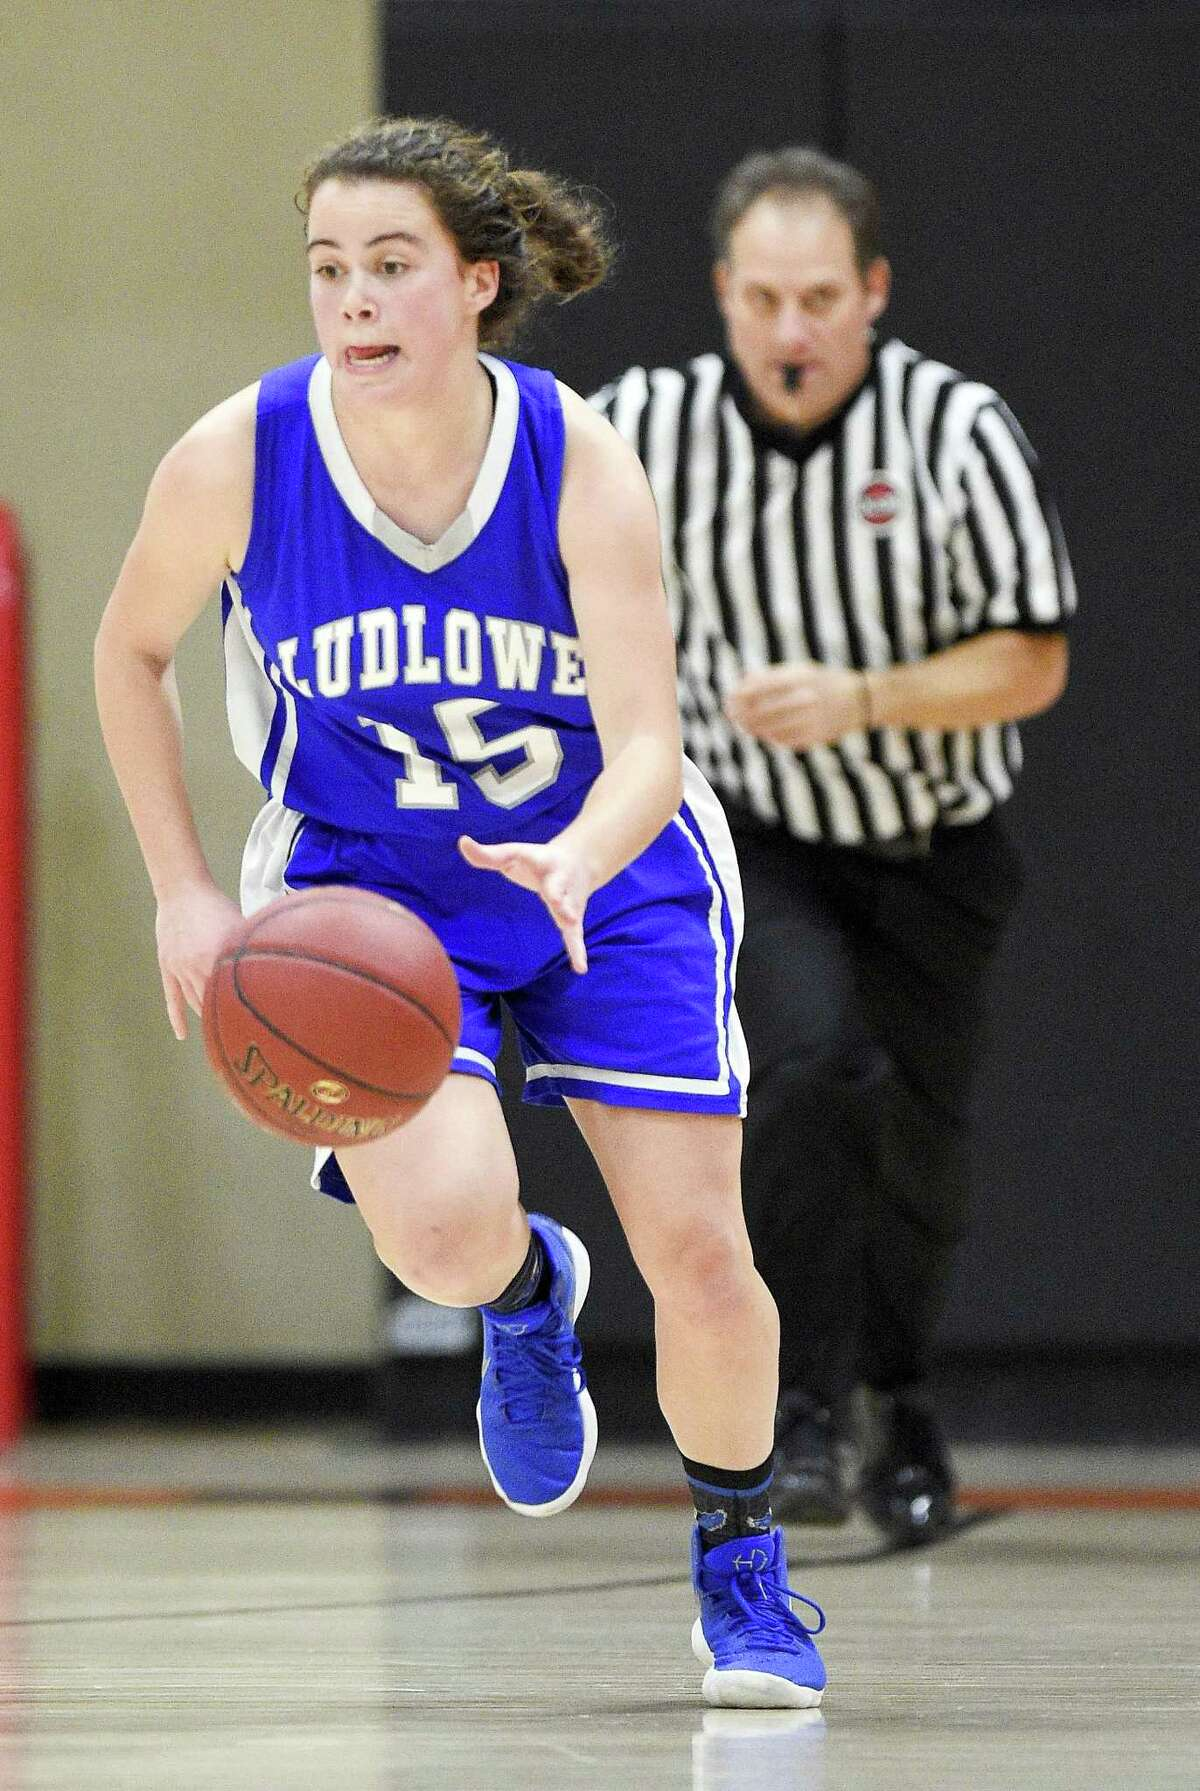 Fairfield Ludlowe's Bridget Paulmann (15) drive up court against Stamford during a girls varsity basketball game at Stamford High School in Stamford, Conn. on Friday, Dec. 22, 2017. Stamford defeated Fairfield Ludlowe 38-33.